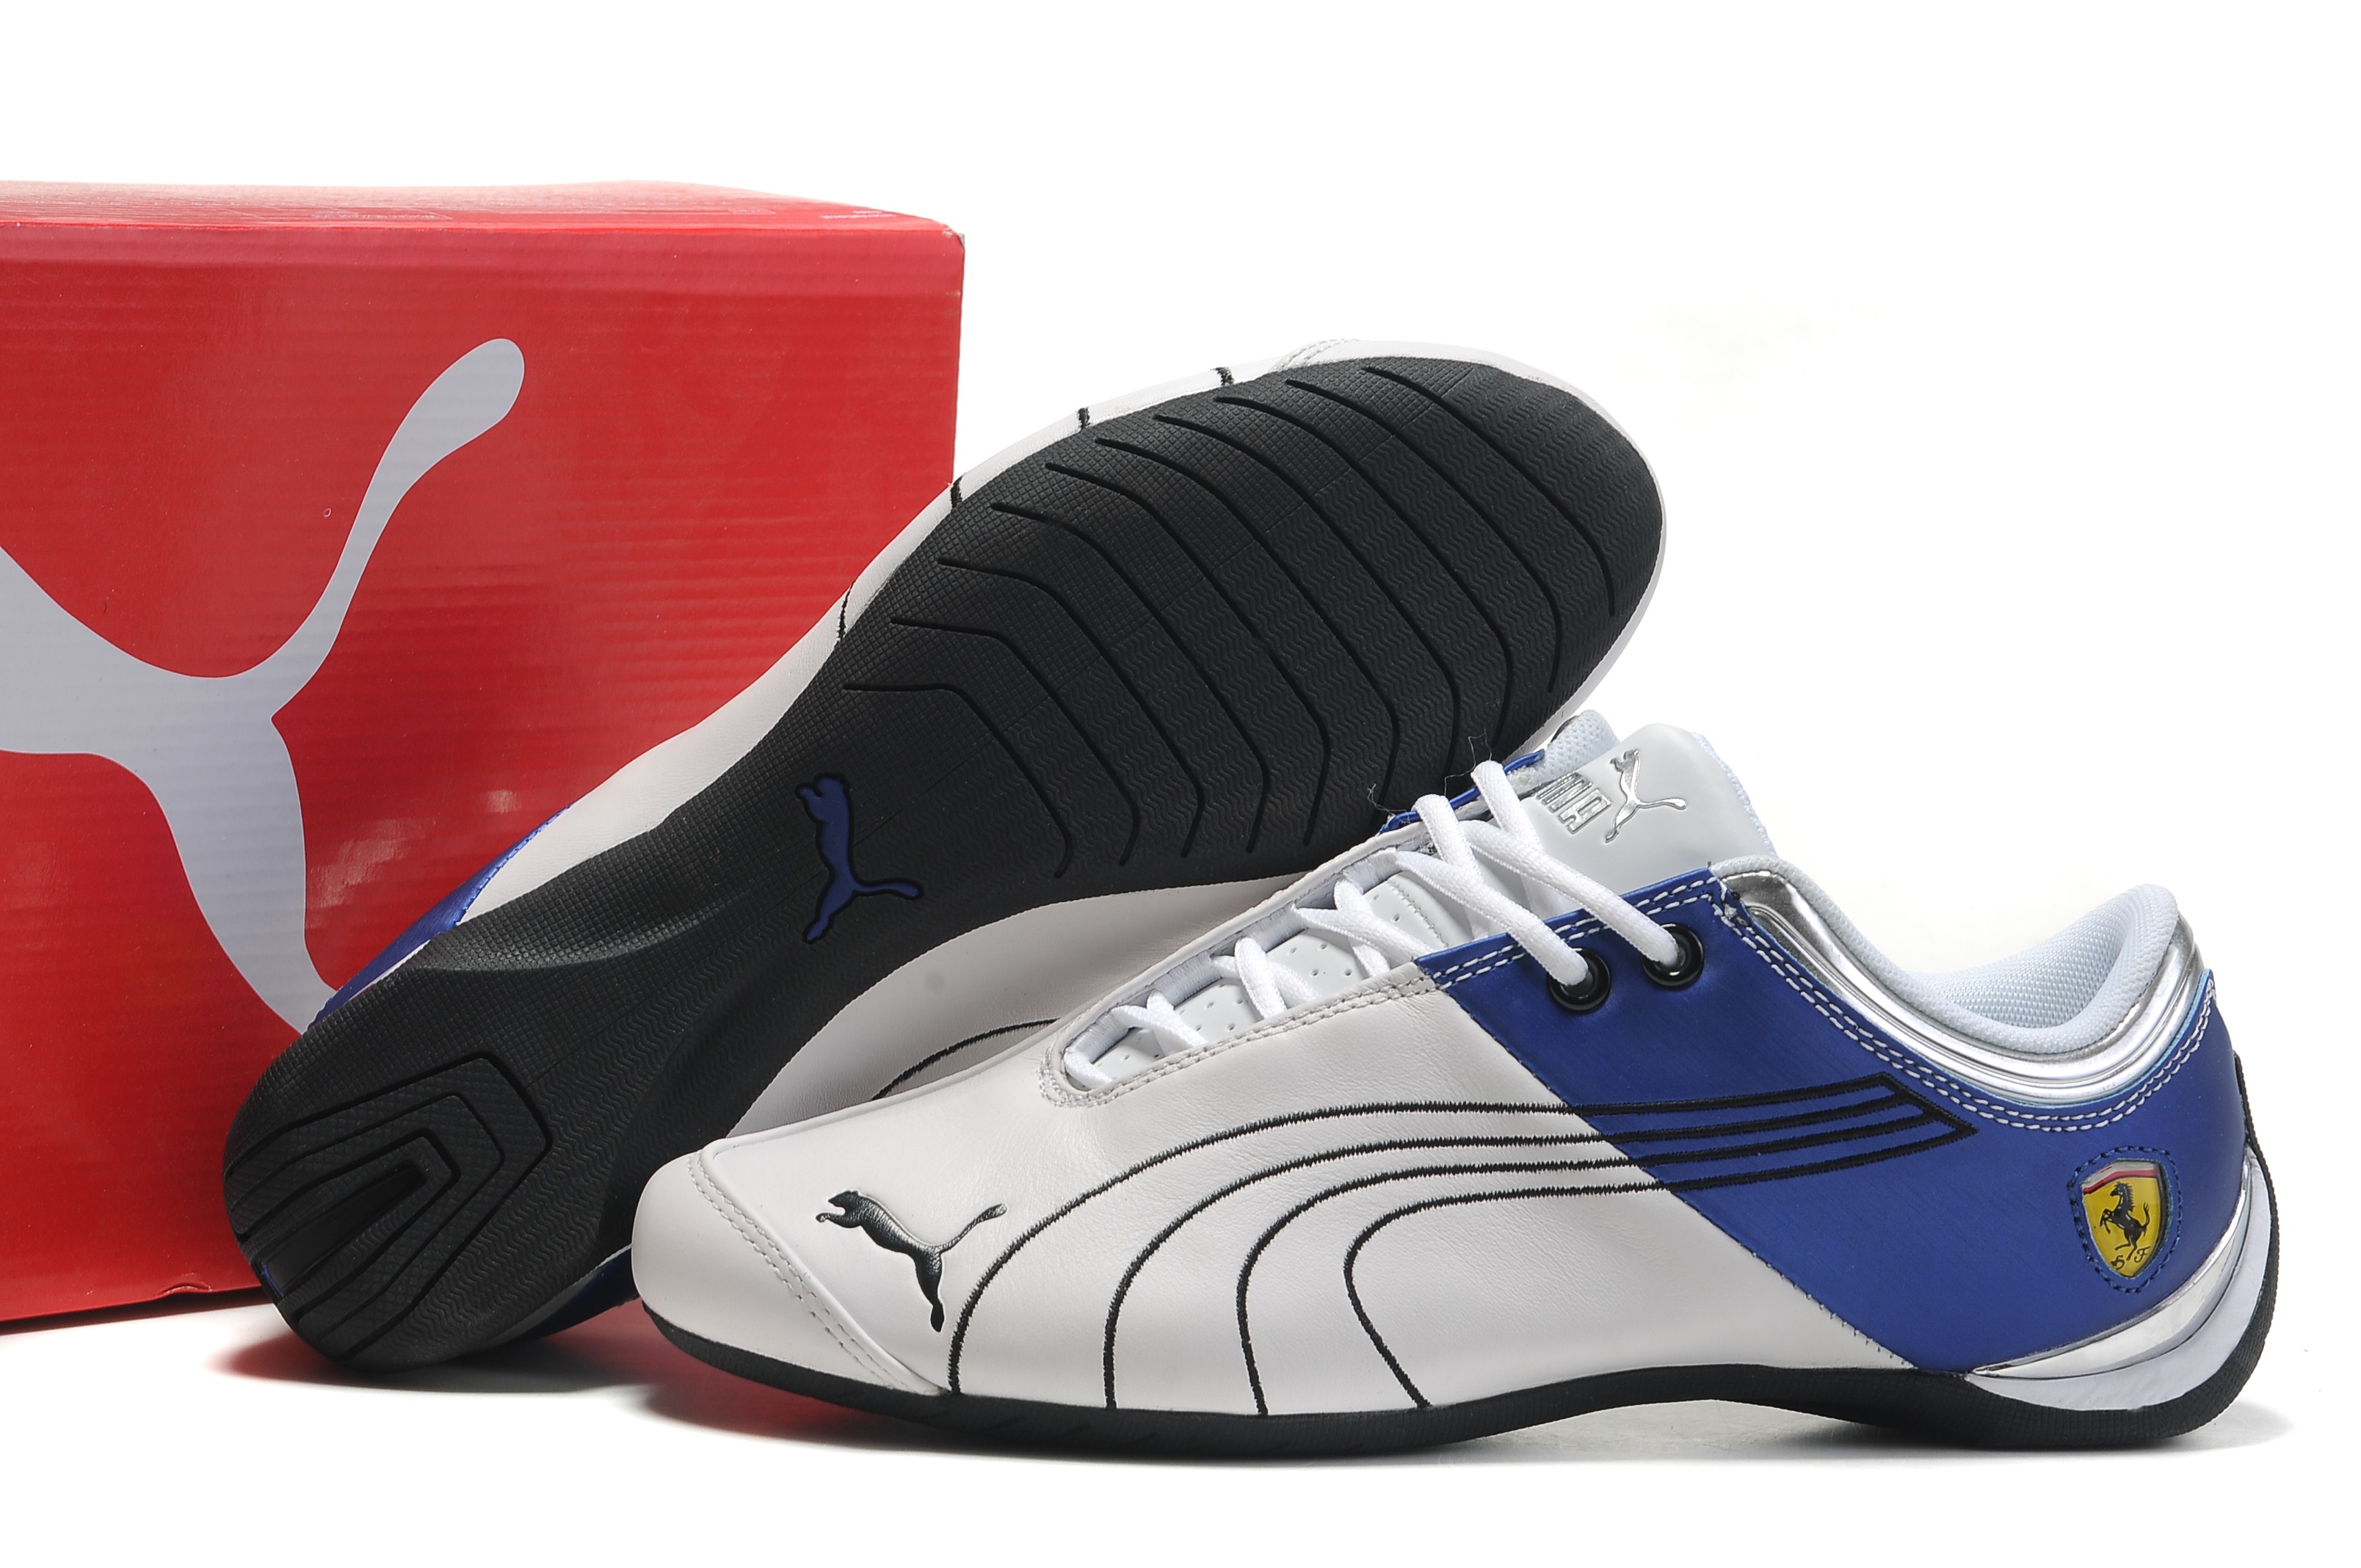 puma ferrari future cat shoes whiteblueblack puma